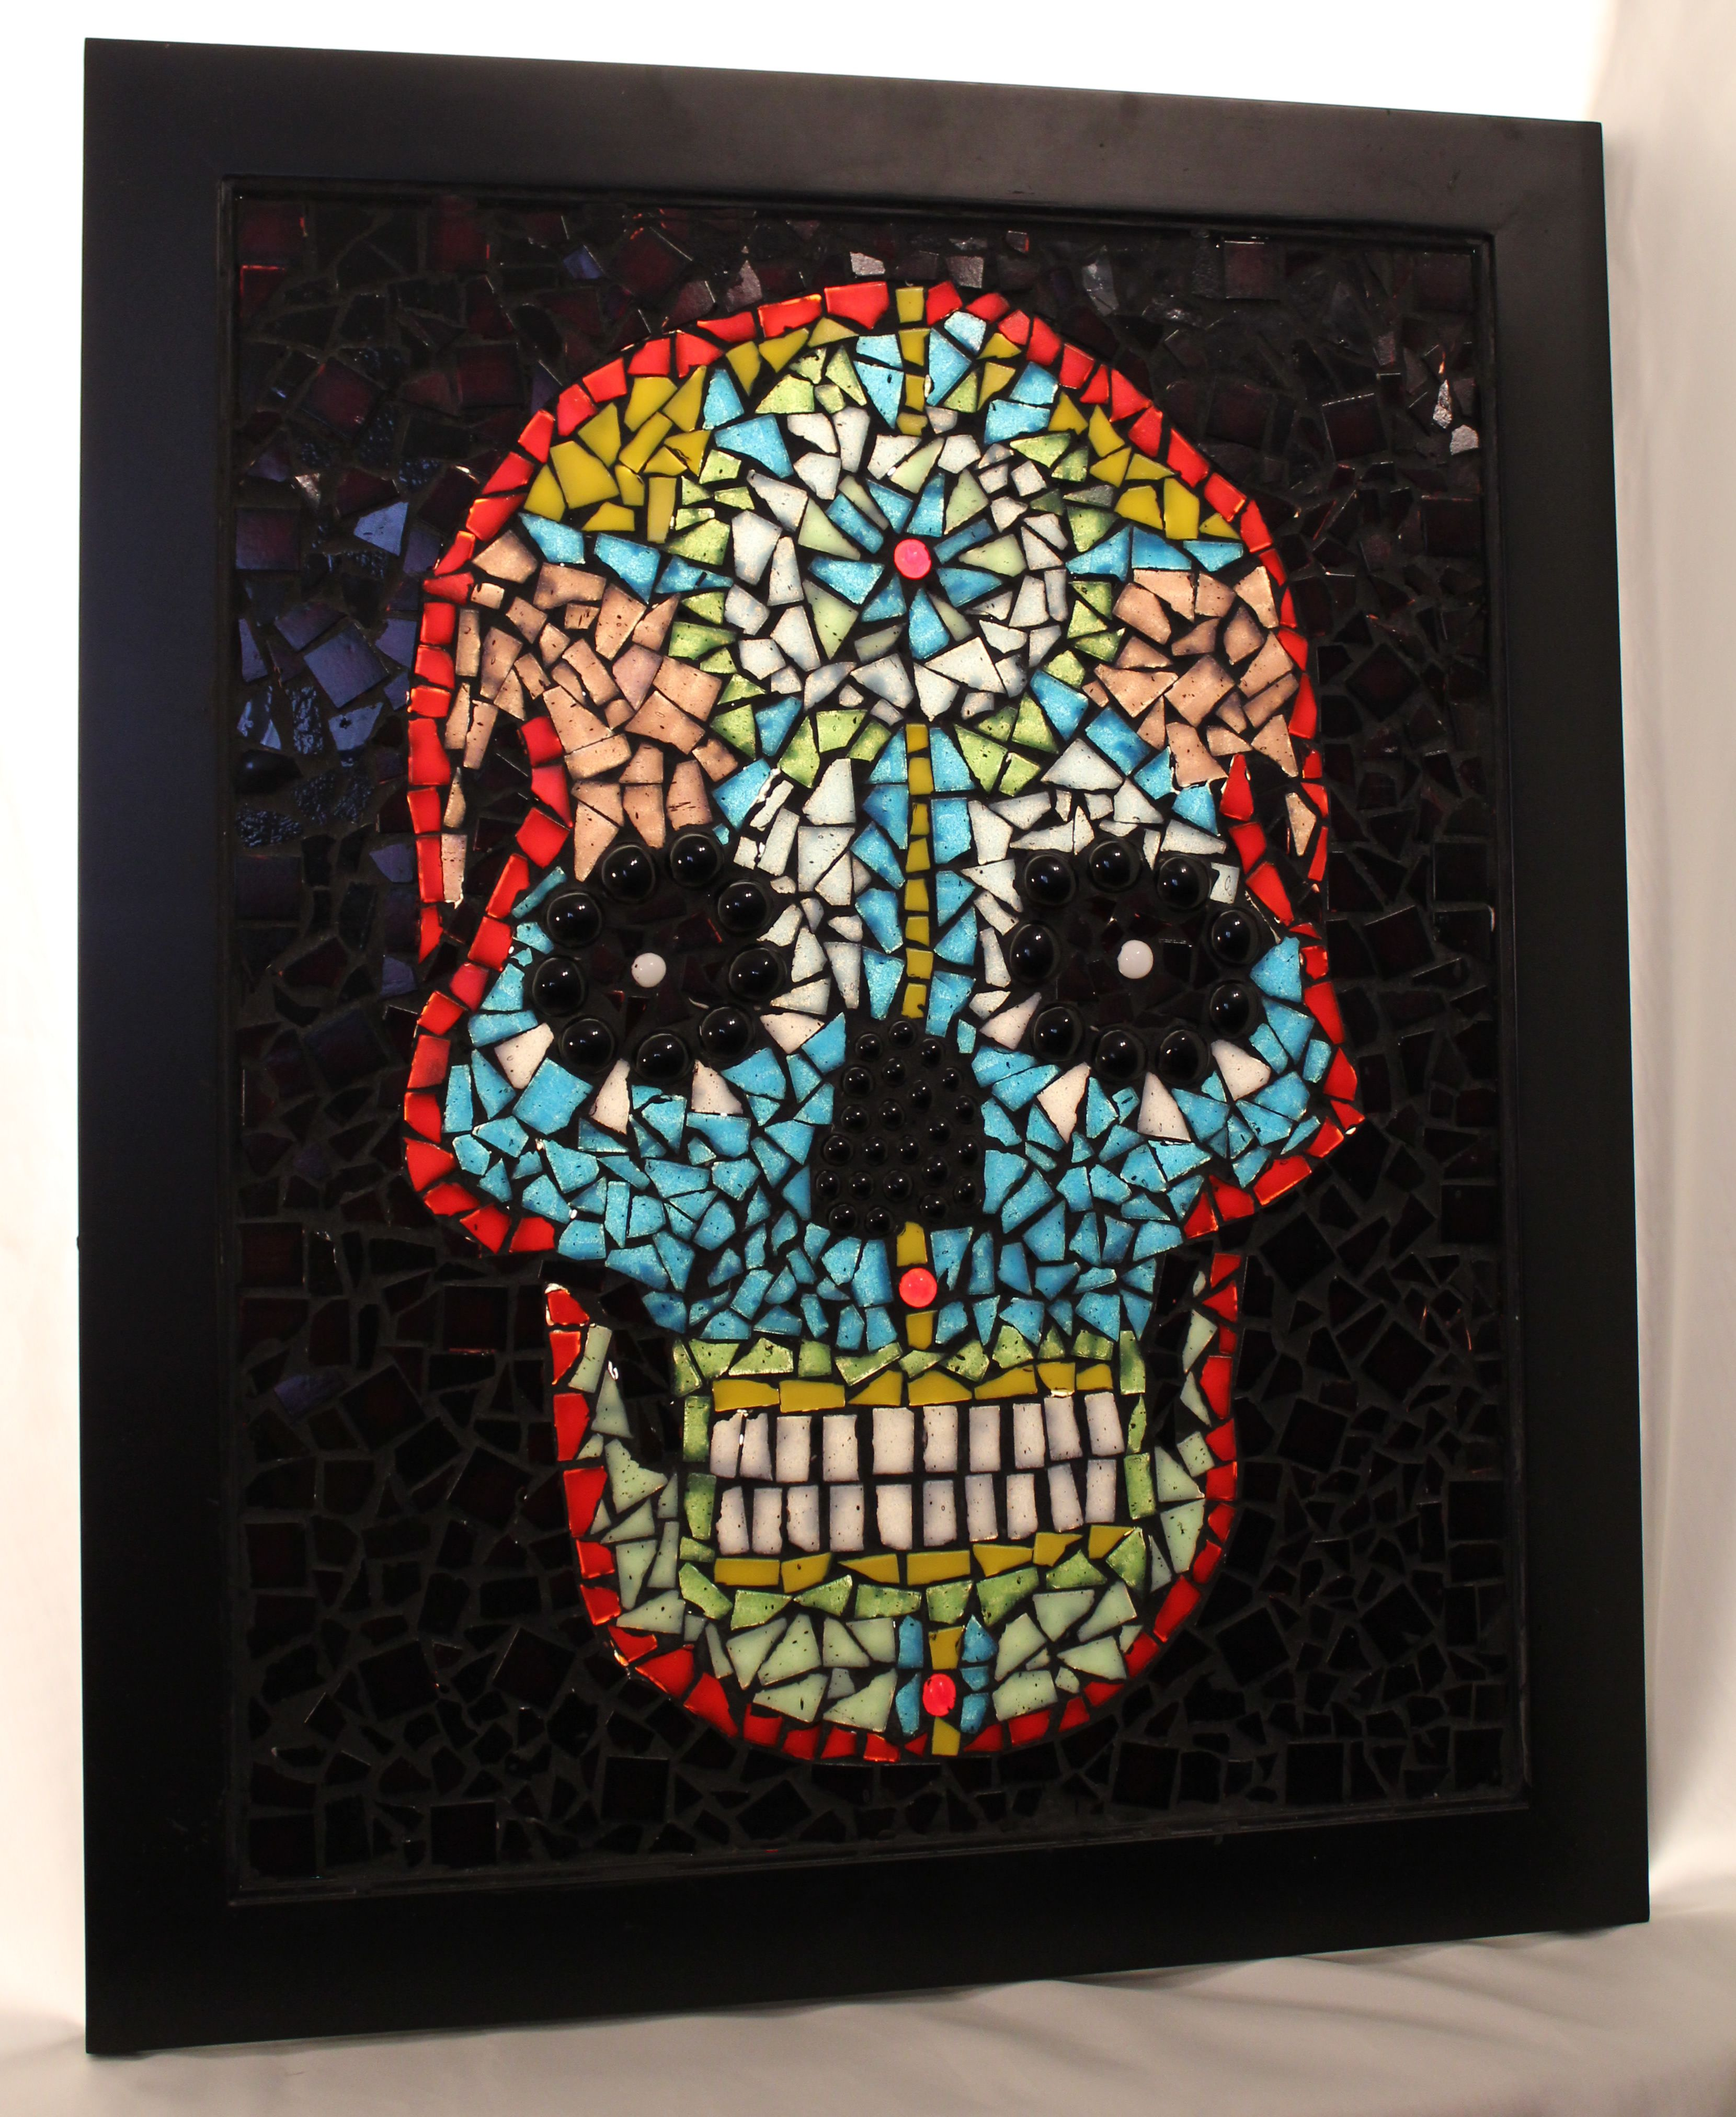 Day of the Dead style mosaic skull